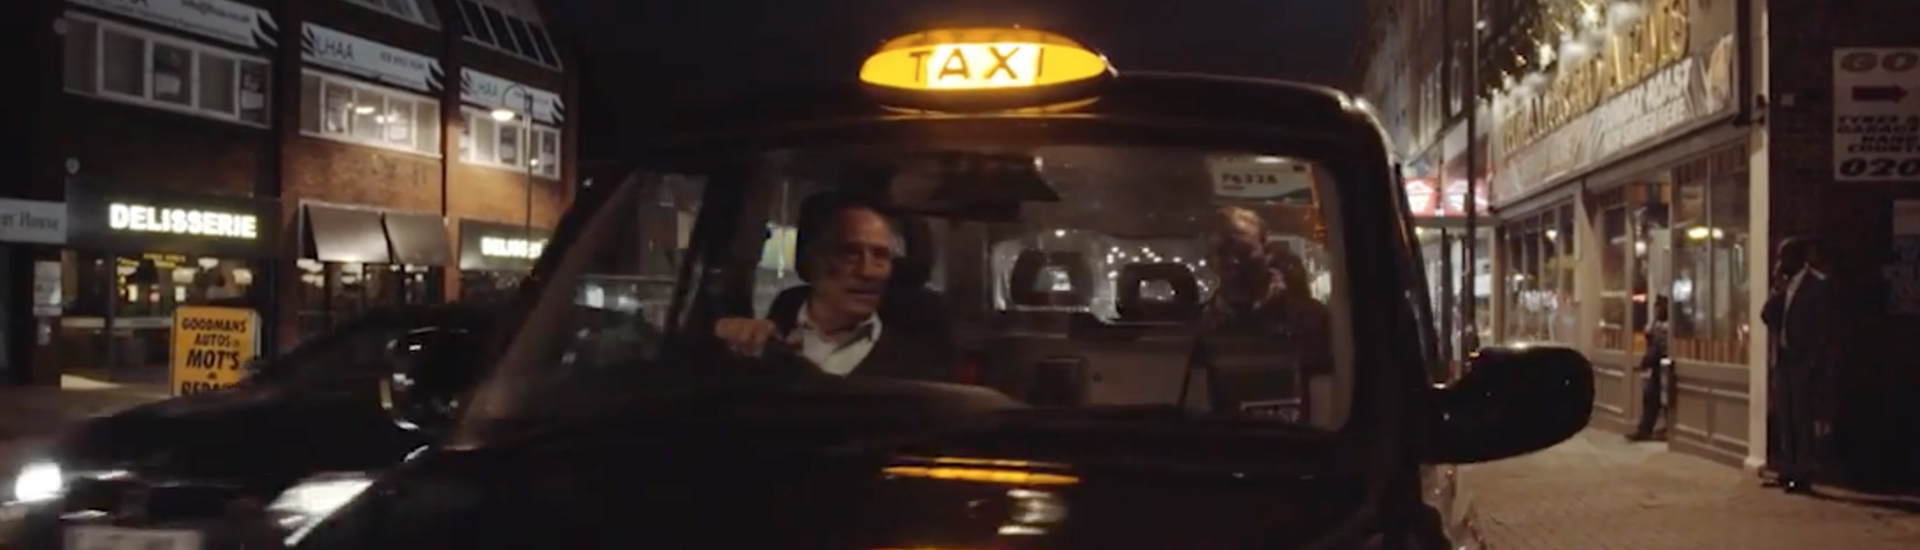 Taxi driver receiving payment.